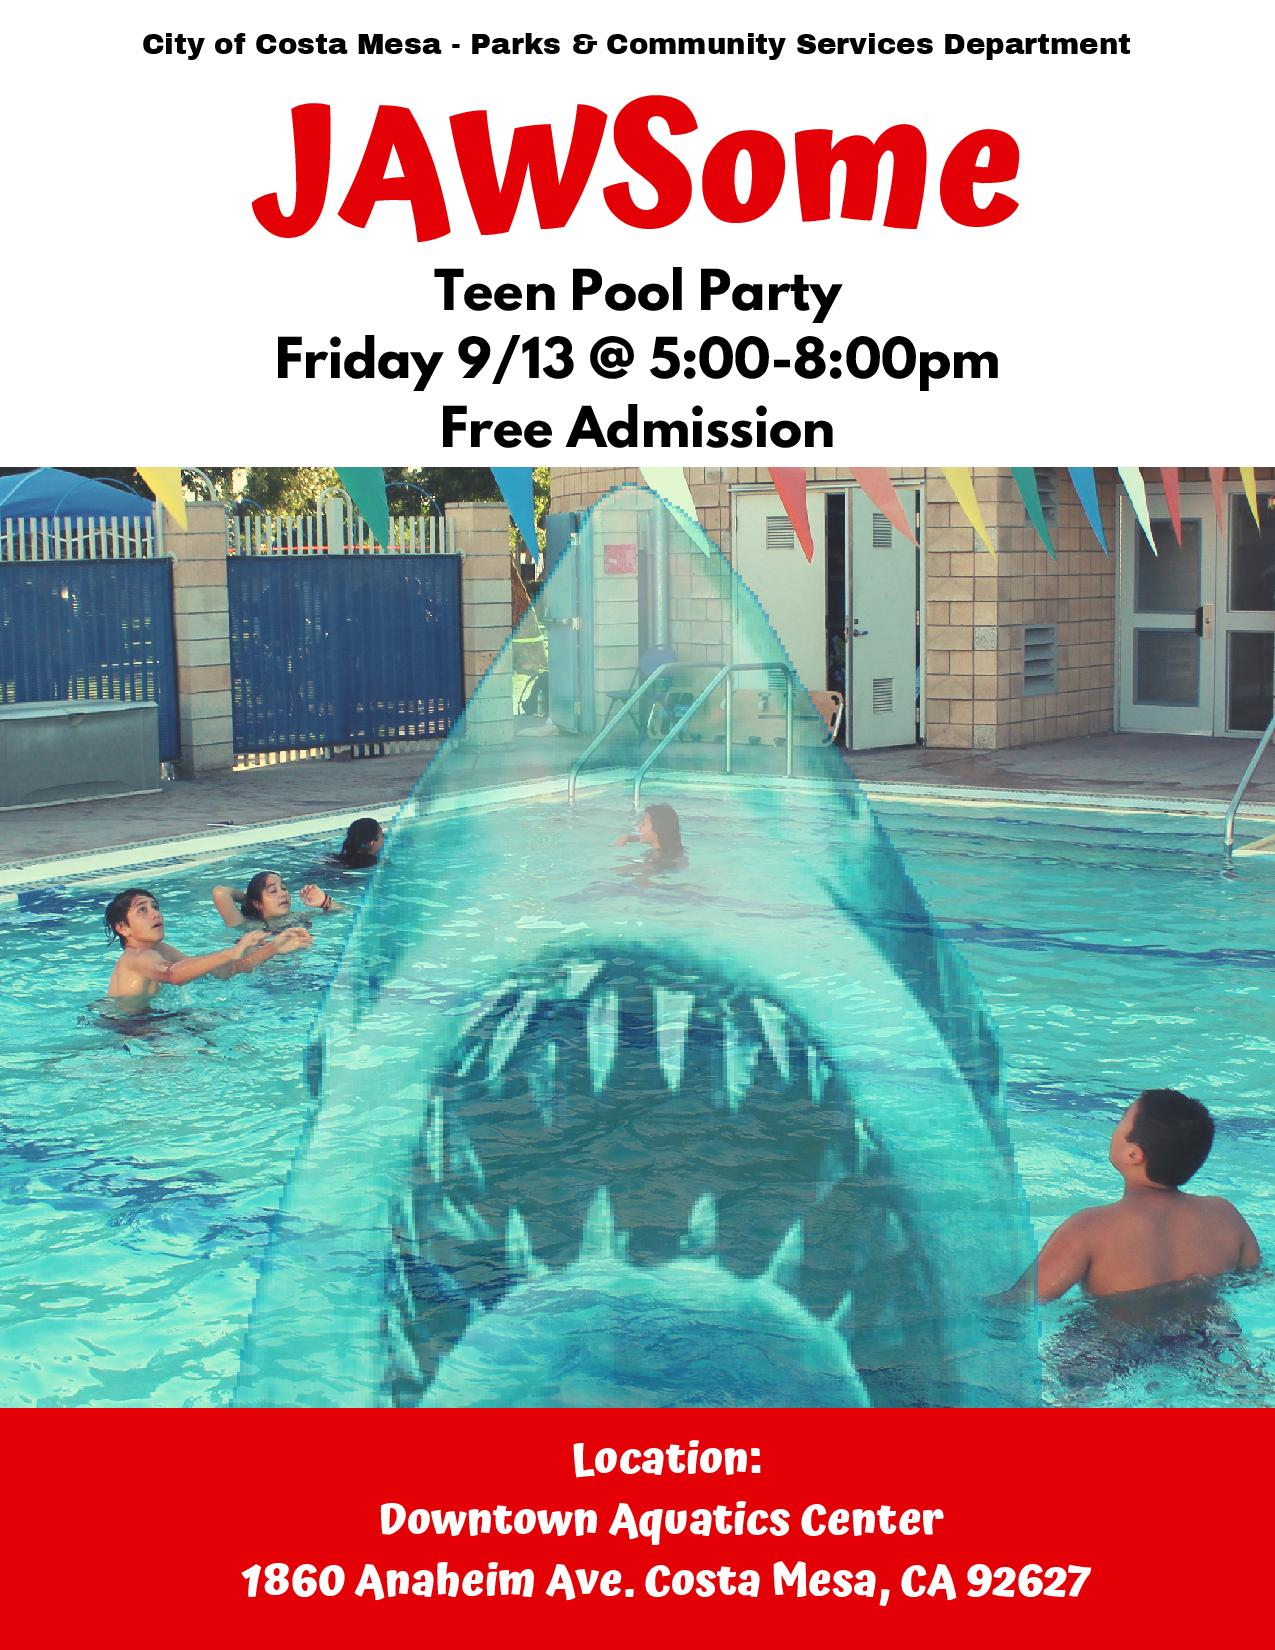 _JAWS_ome Teen Pool Party updated 08.14.19-page-001